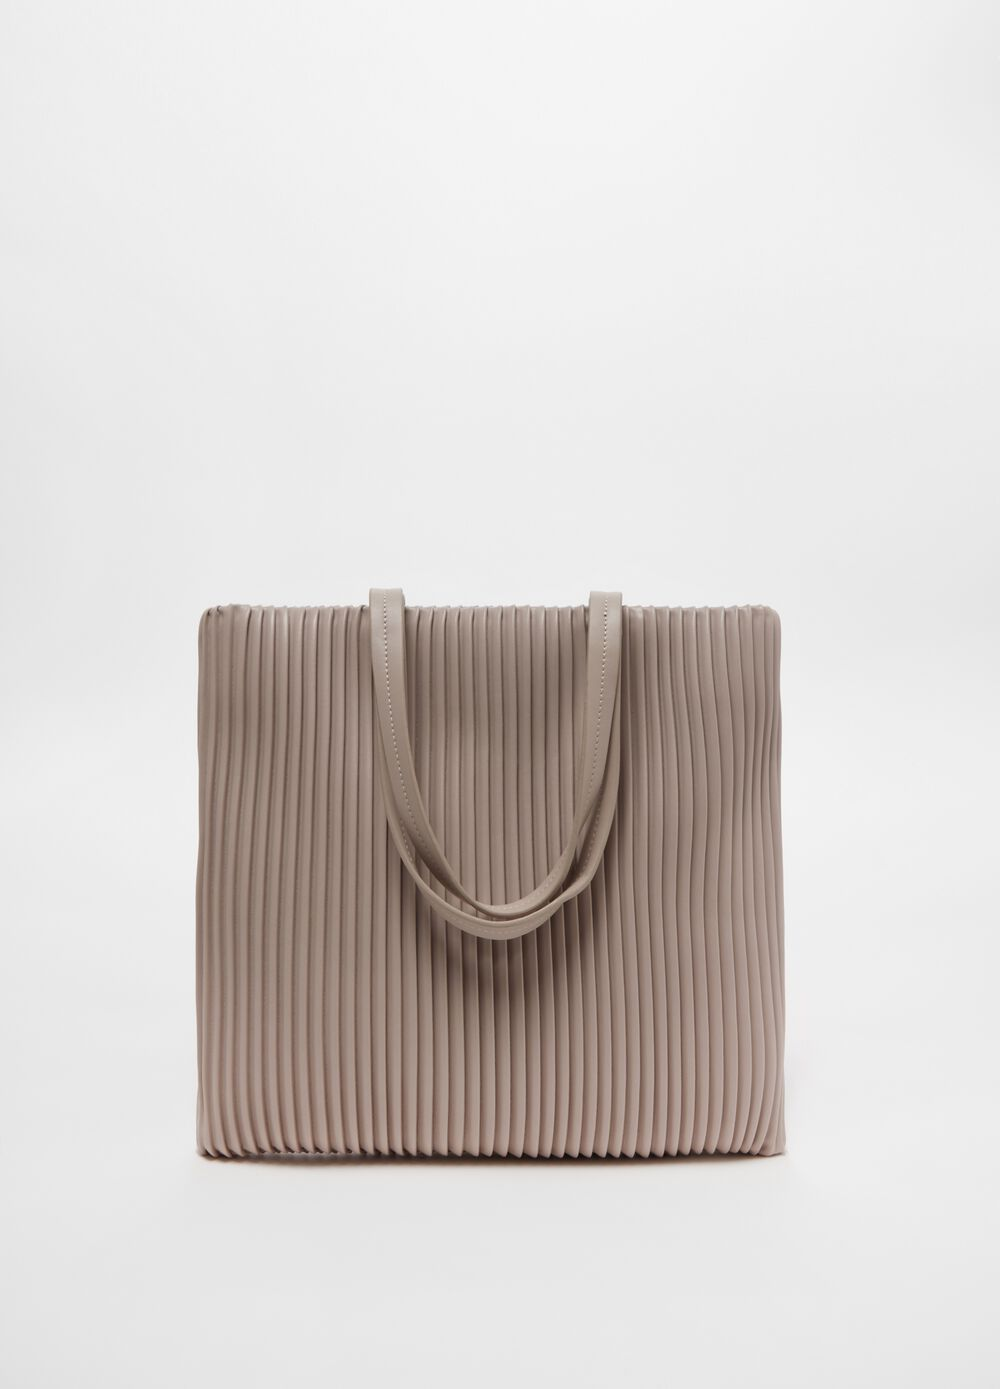 Flat shopping bag with striped weave